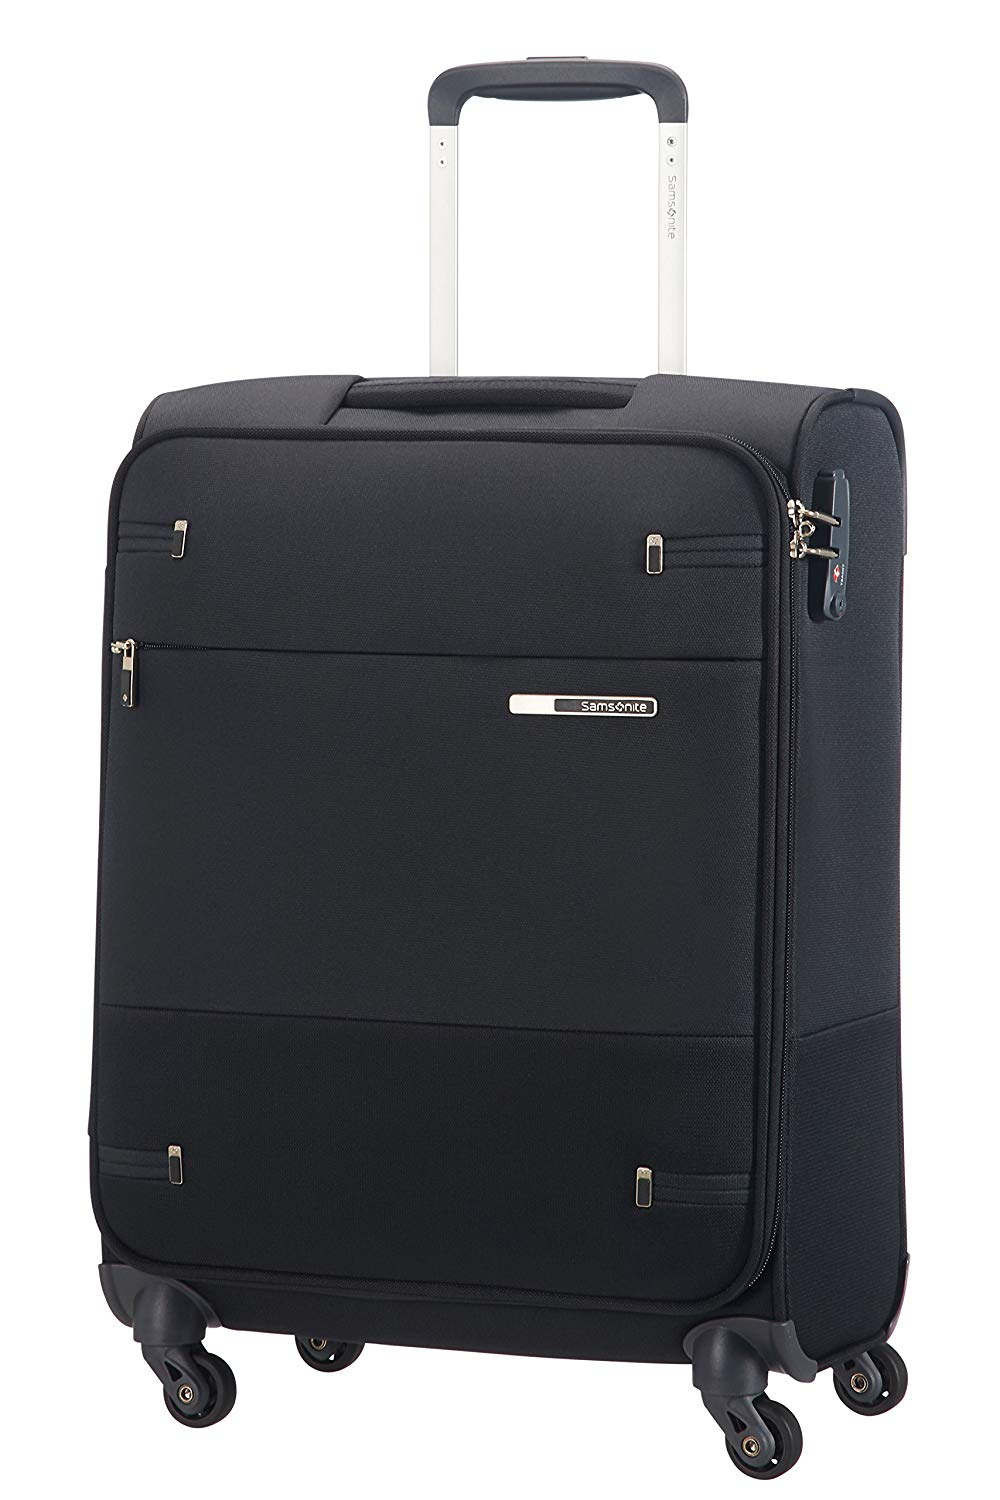 SAMSONITE Base Boost - Spinner 55 Koffer, Length 40 cm, 39 Liter, Schwarz (Black)